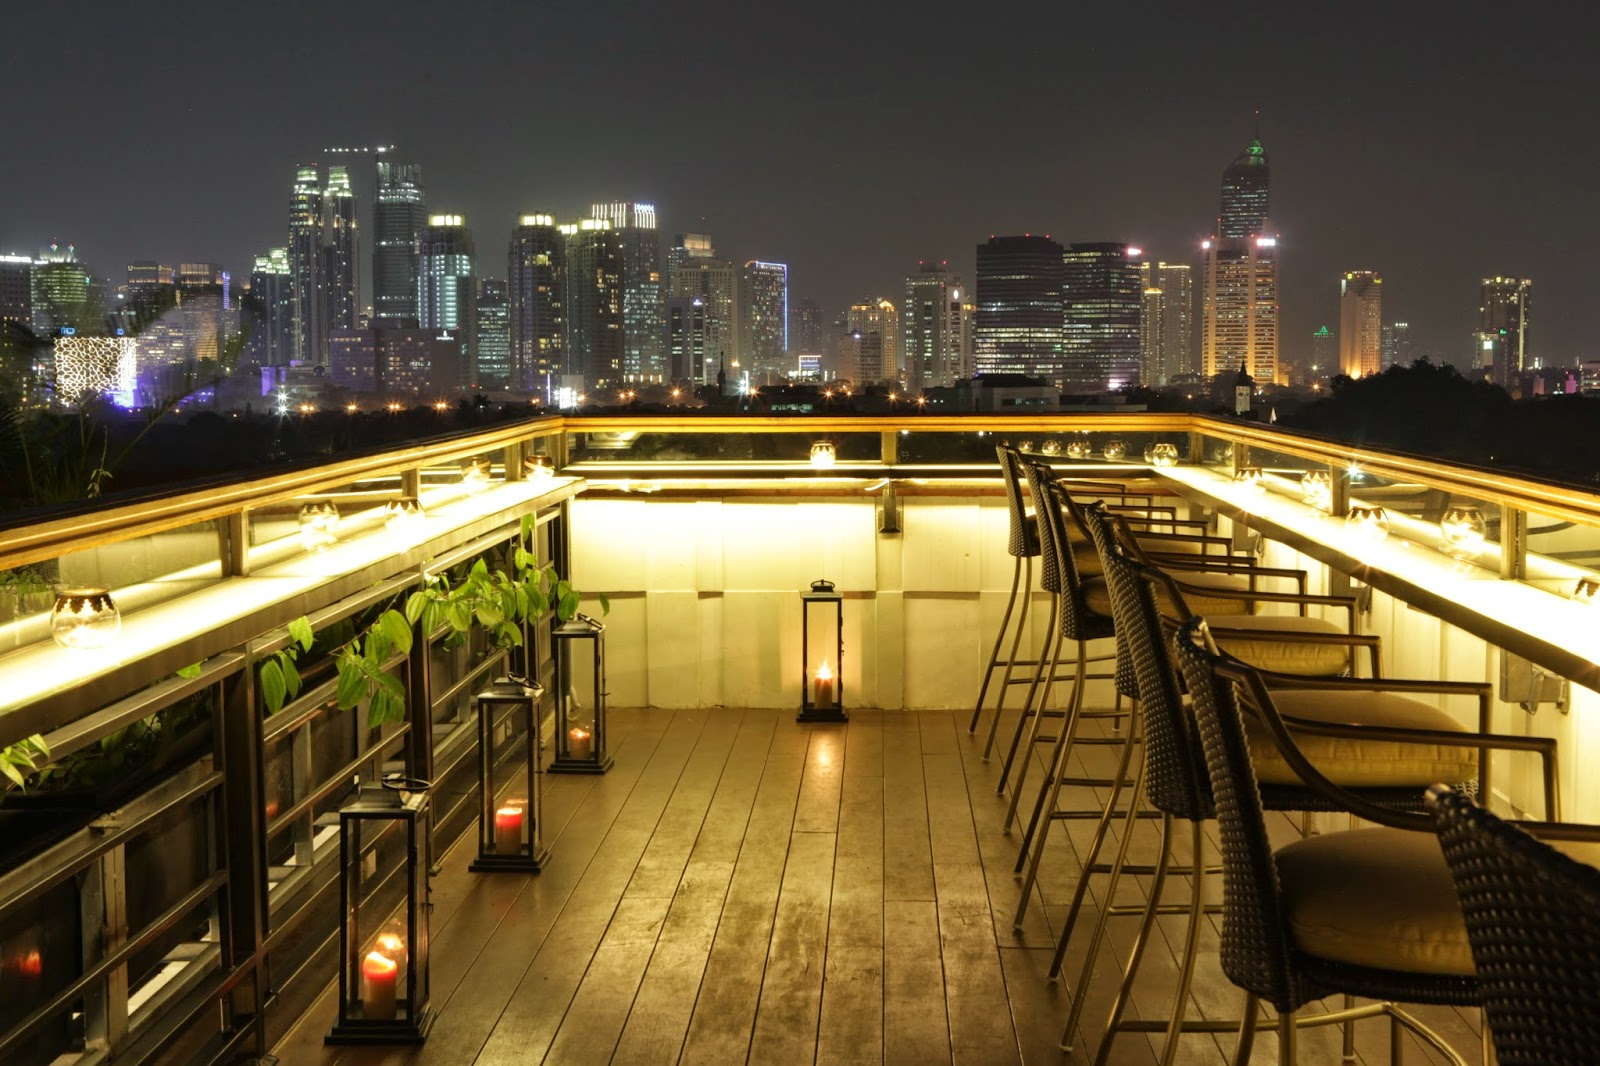 Top 10 Rooftop Bars In Jakarta  Jakarta100bars Nightlife. How To Fix Water Leaking Into Basement. Basement Makeovers. Ranch Basement Floor Plans. Wood Basement Construction. Its Like 09 In Your Basement. Cabelas Bargain Basement. 3 Bedroom Basement For Rent. Simple House Plans With Basement